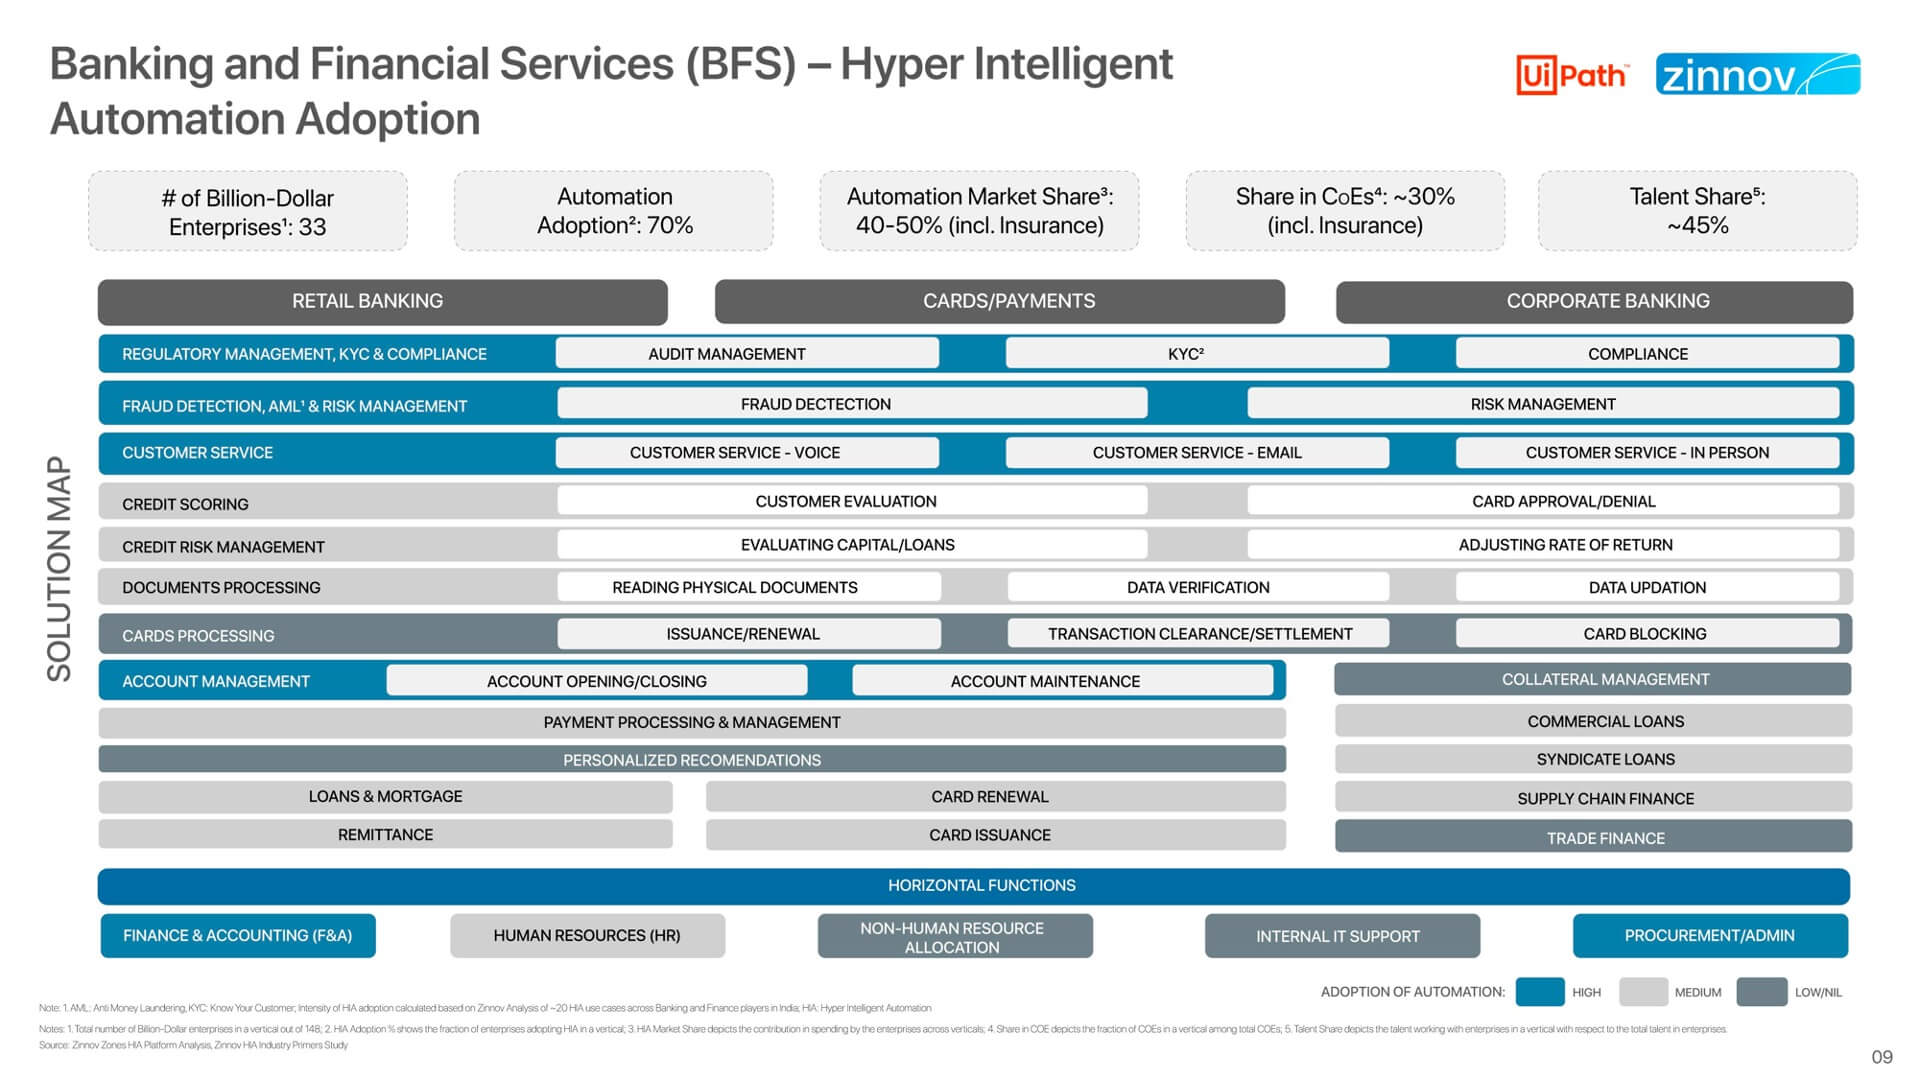 Hyper Intelligent Automation Adoption In Billion-Dollar Large Enterprises